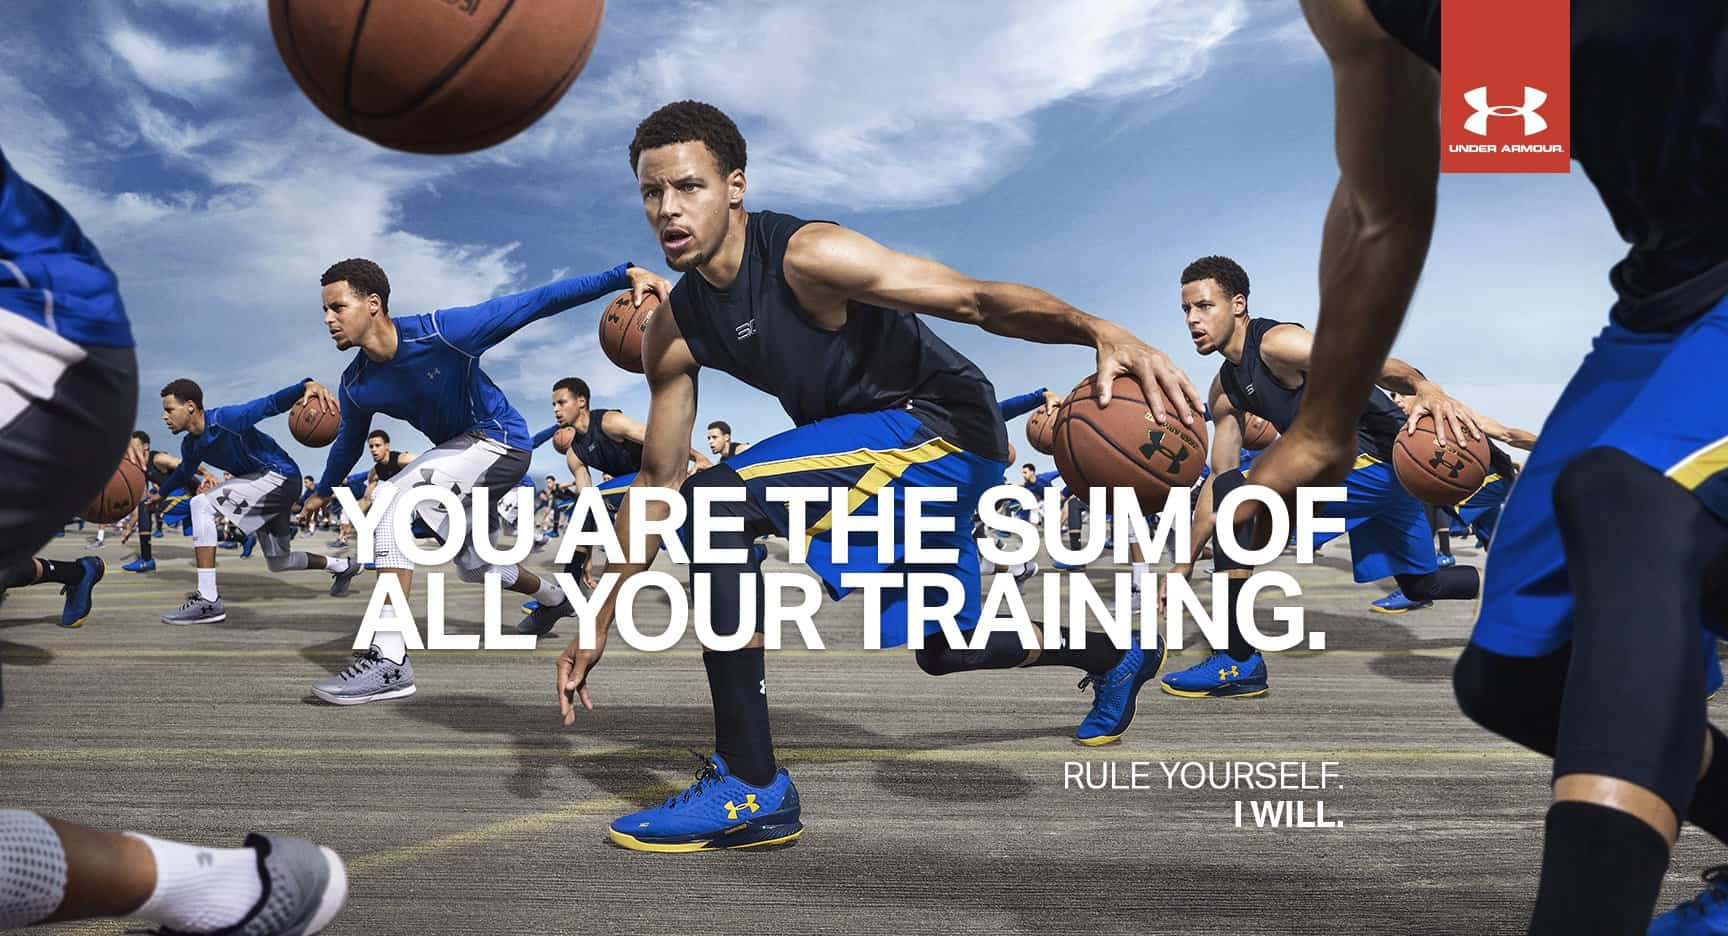 Under Armour Motivational Quotes – Our Top 10